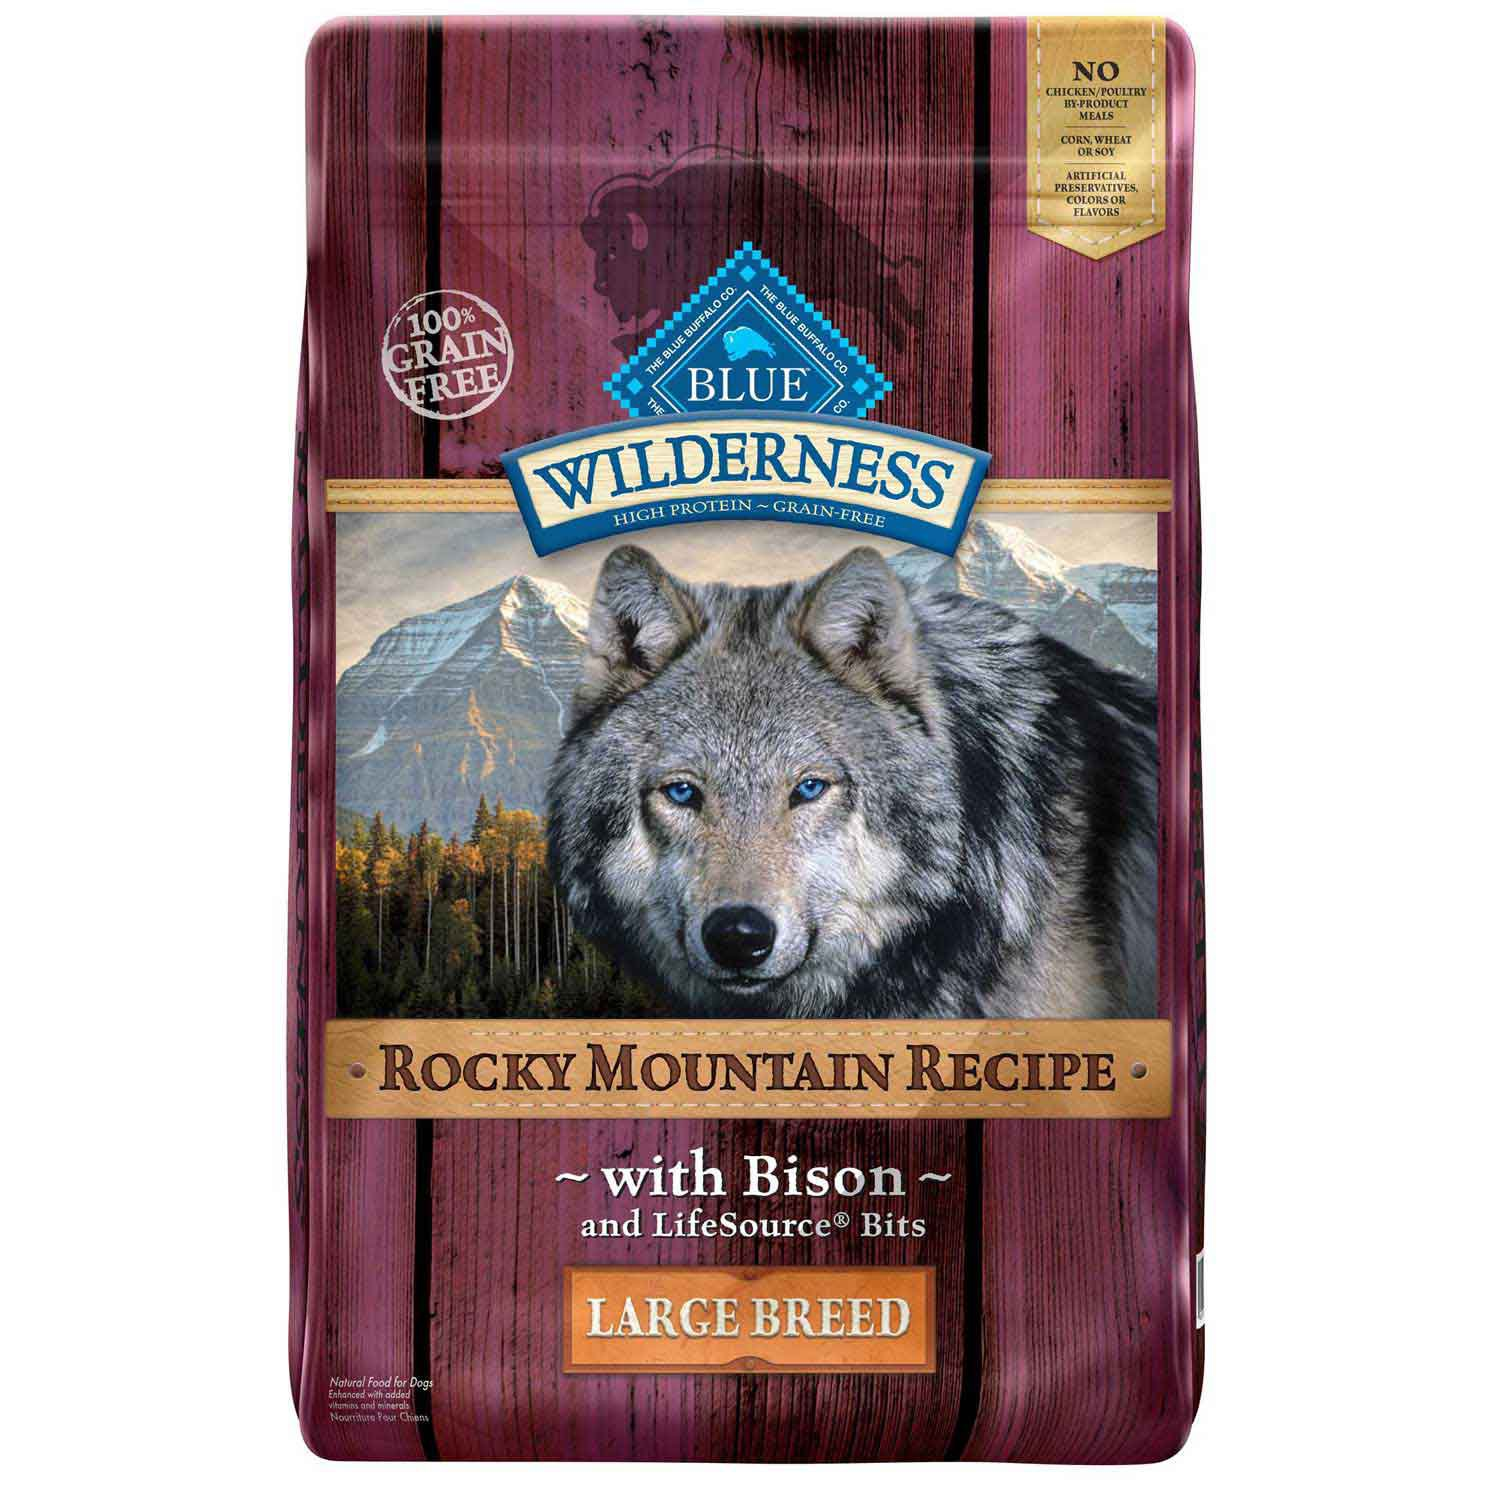 Puppy Recipe Dog Food With Bison